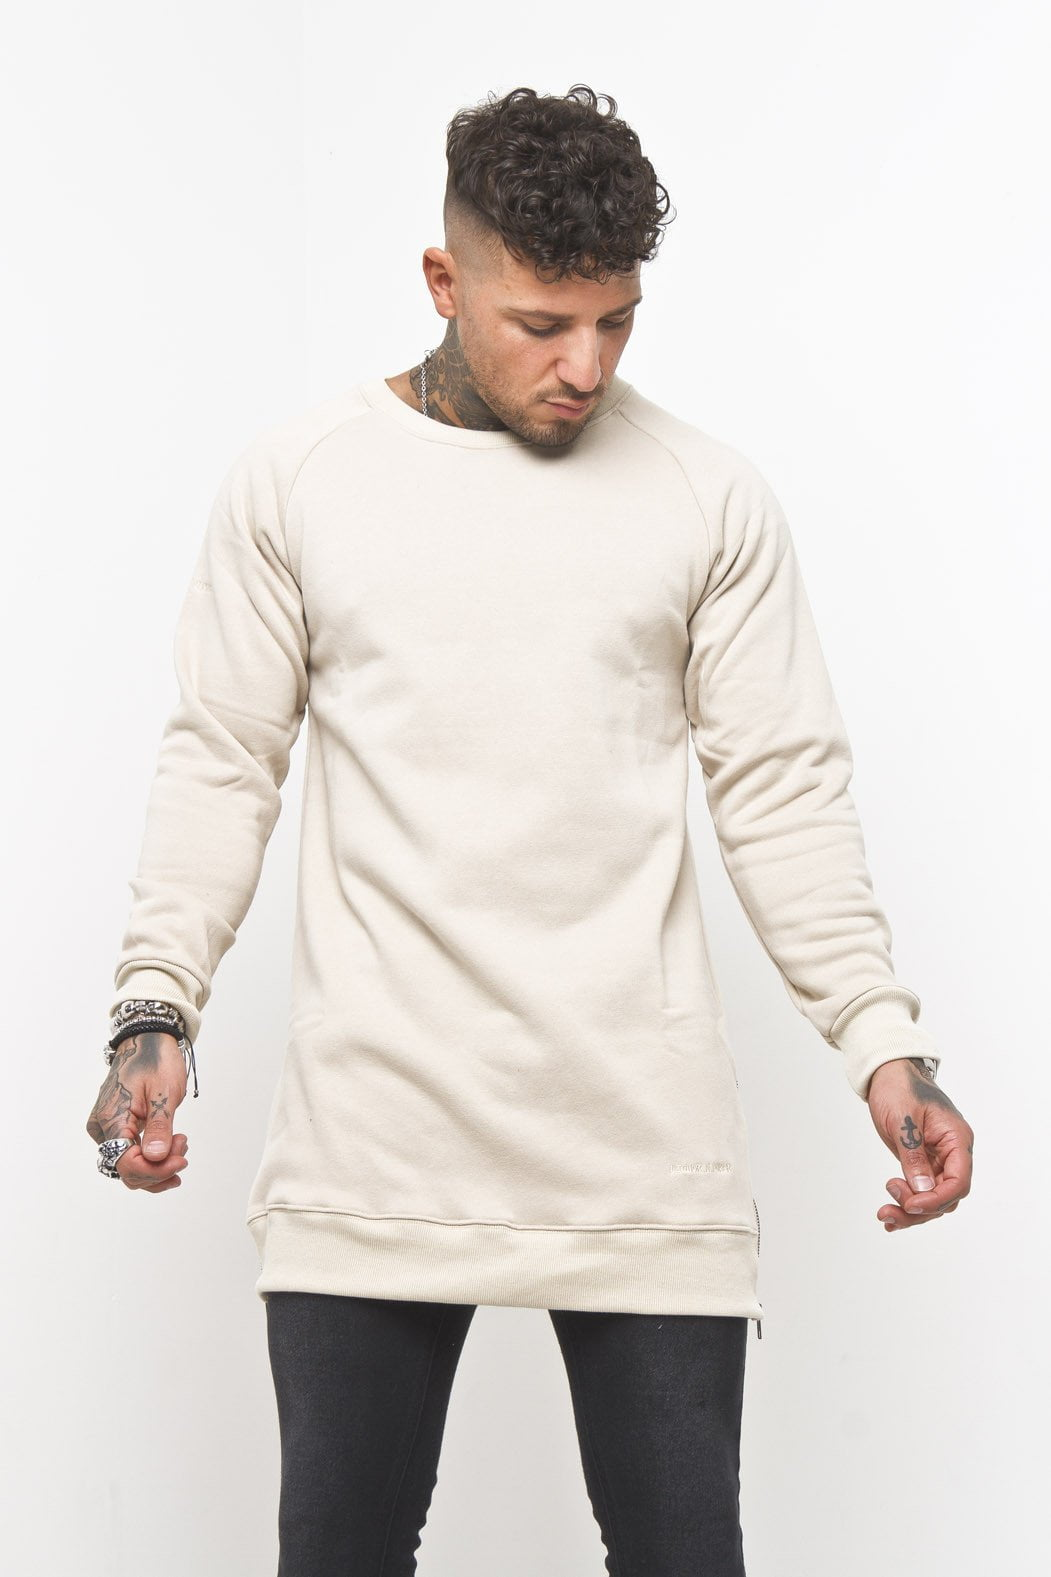 Curved Hem Zip Sweater in Beige - Liquor N Poker  Liquor N Poker